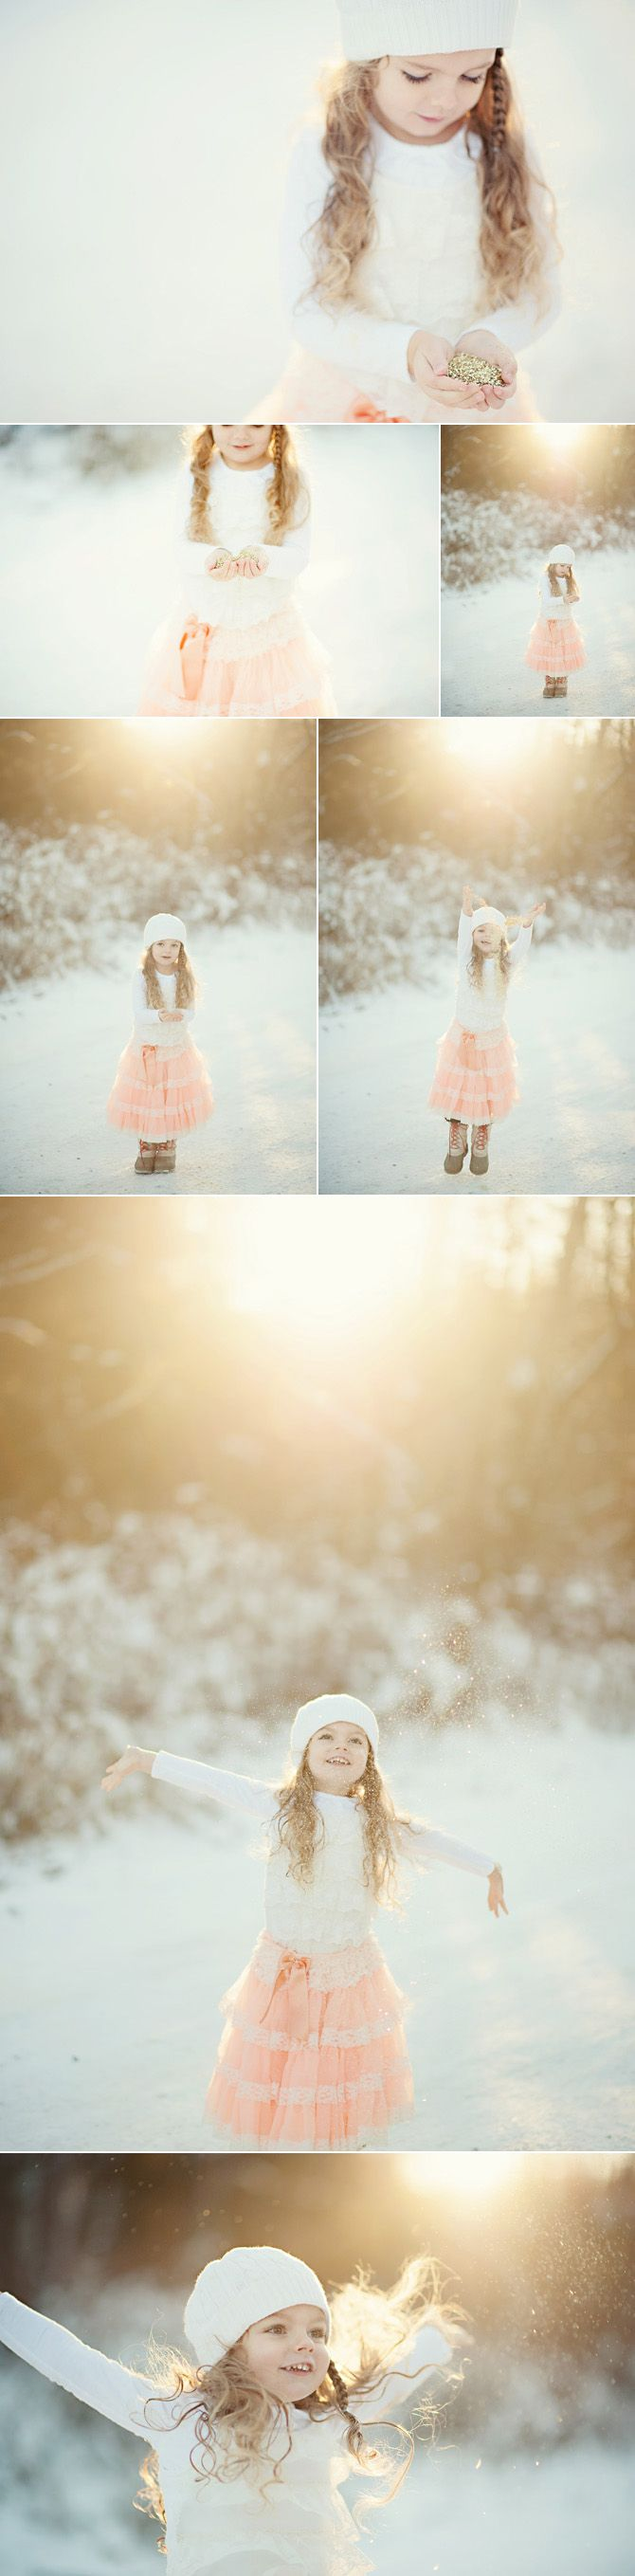 glitter girl, little girl in the snow with glitter, gold glitter, gold glitter photos, photo shoot with glitter, snow glitter girl.  letters to maisie, letters to my daughter